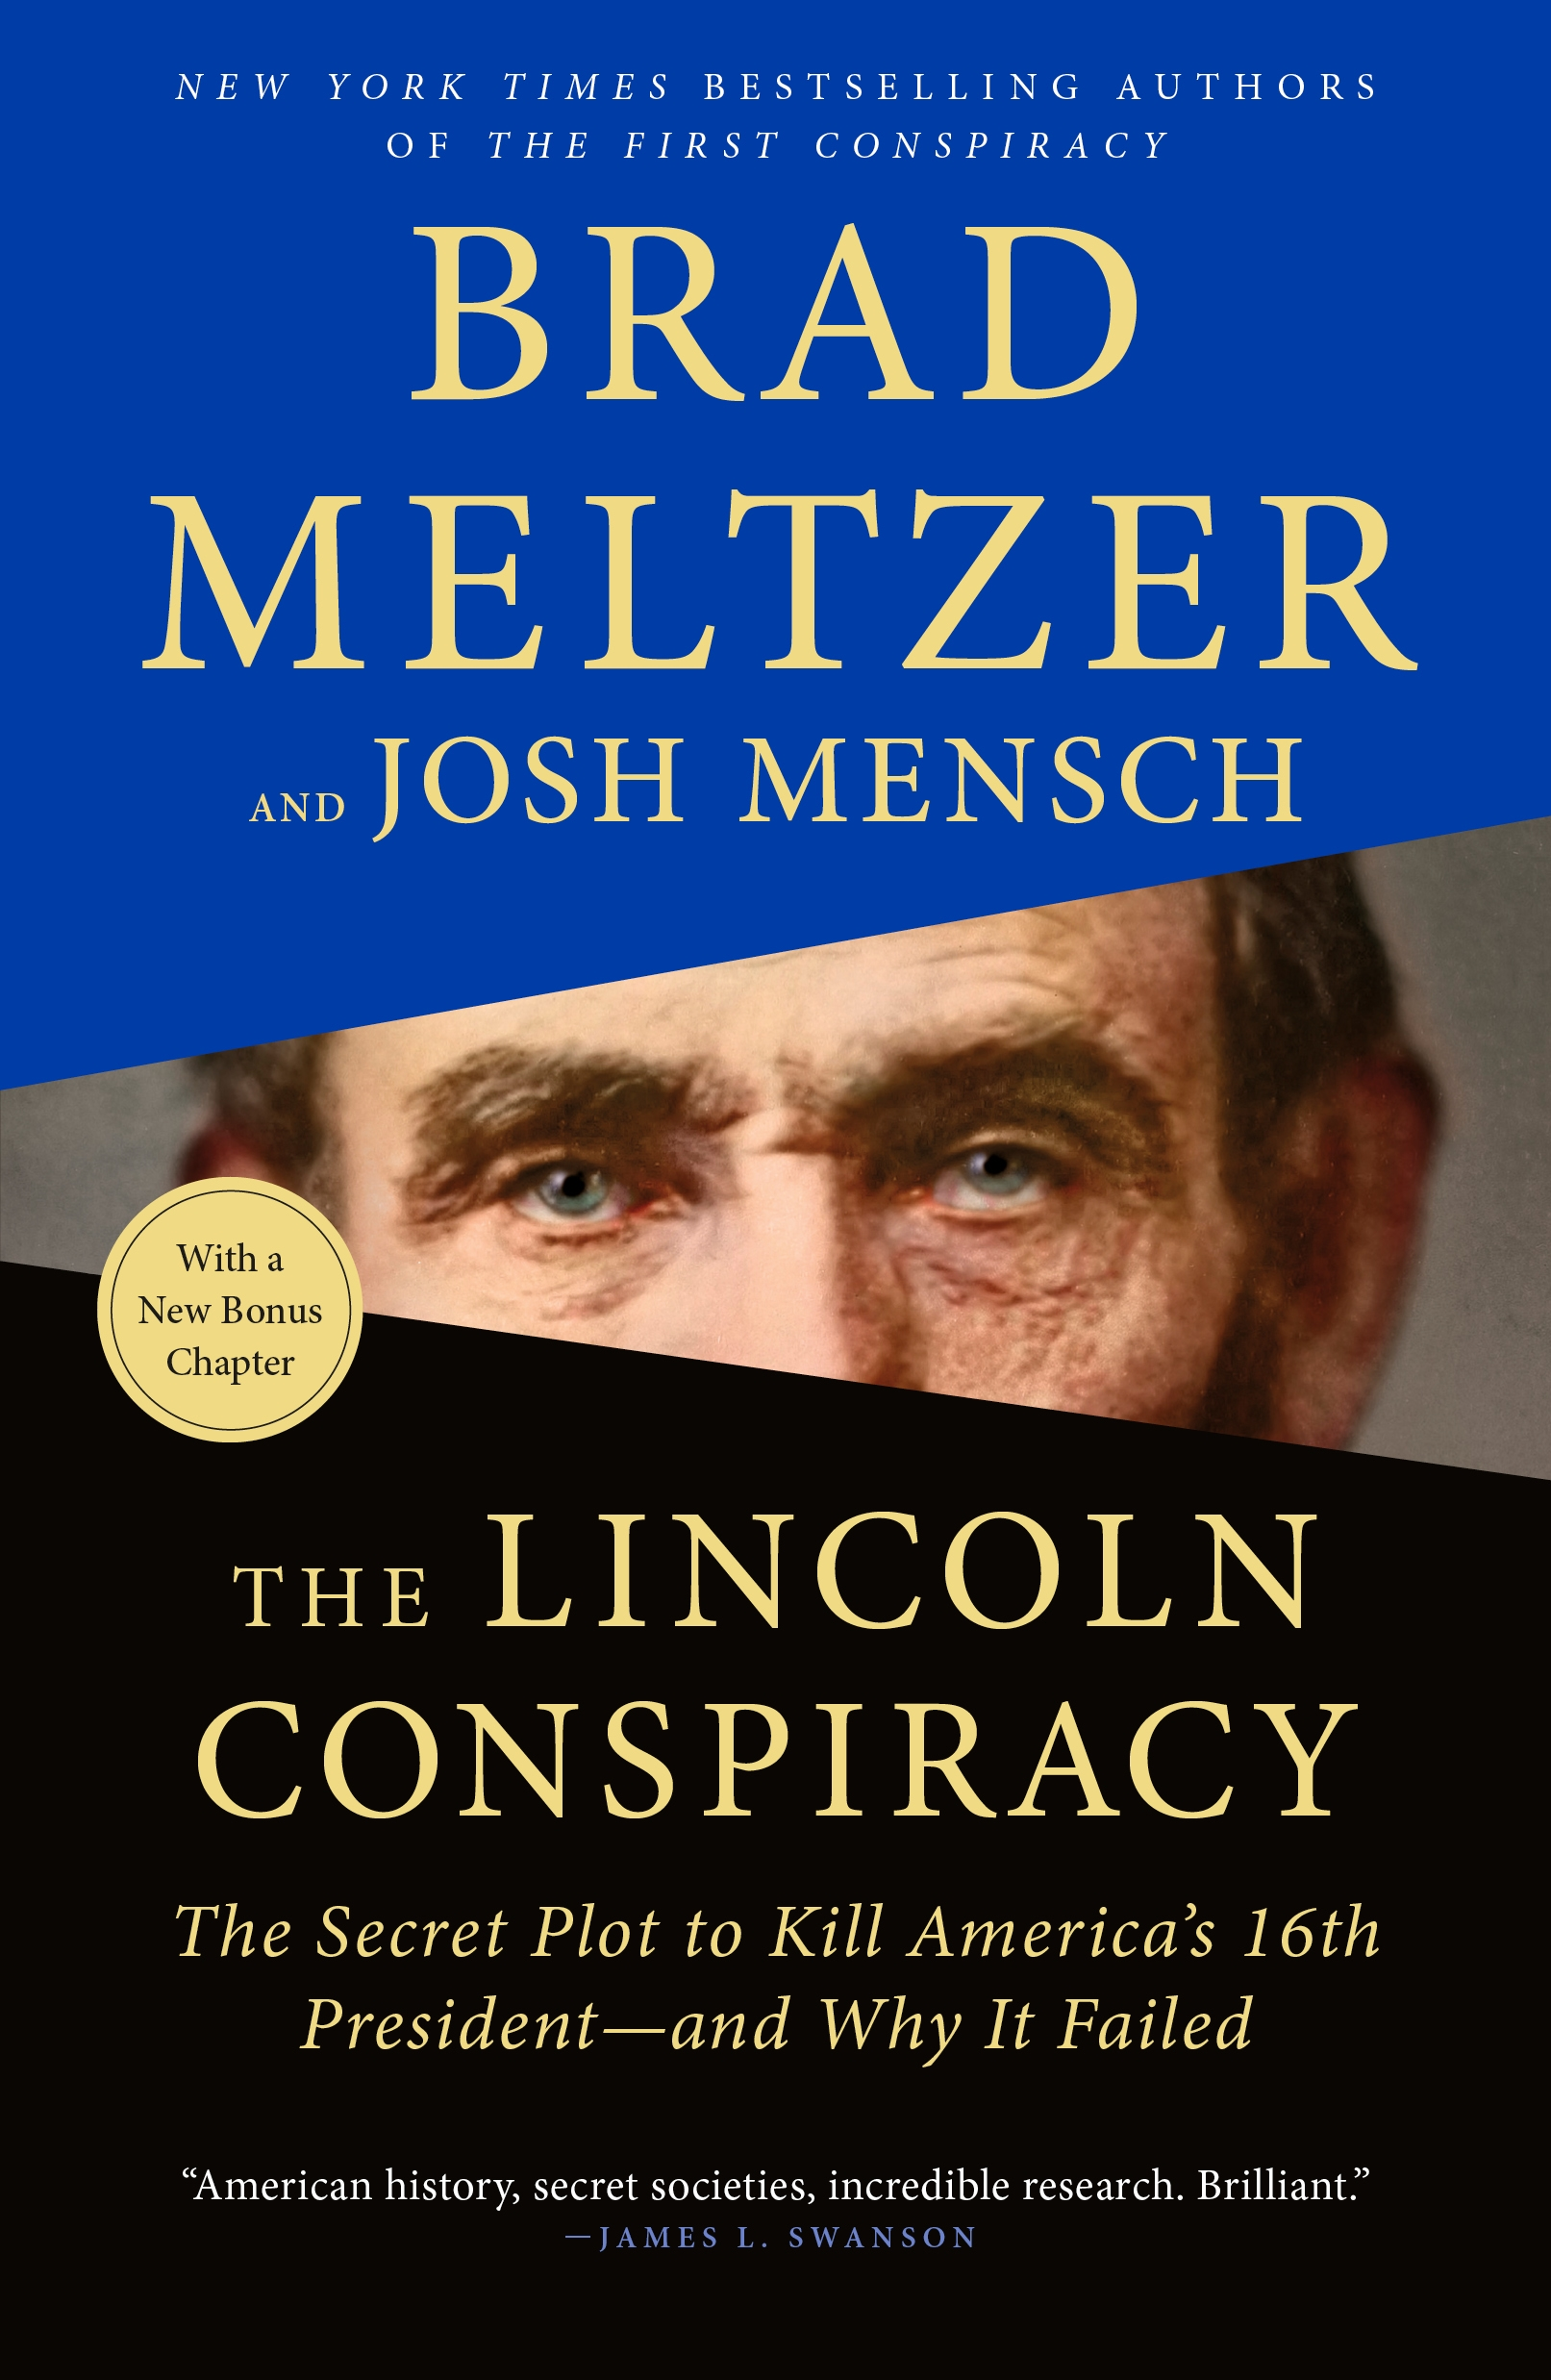 The Lincoln Conspiracy The Secret Plot to Kill America's 16th President--and Why It Failed cover image